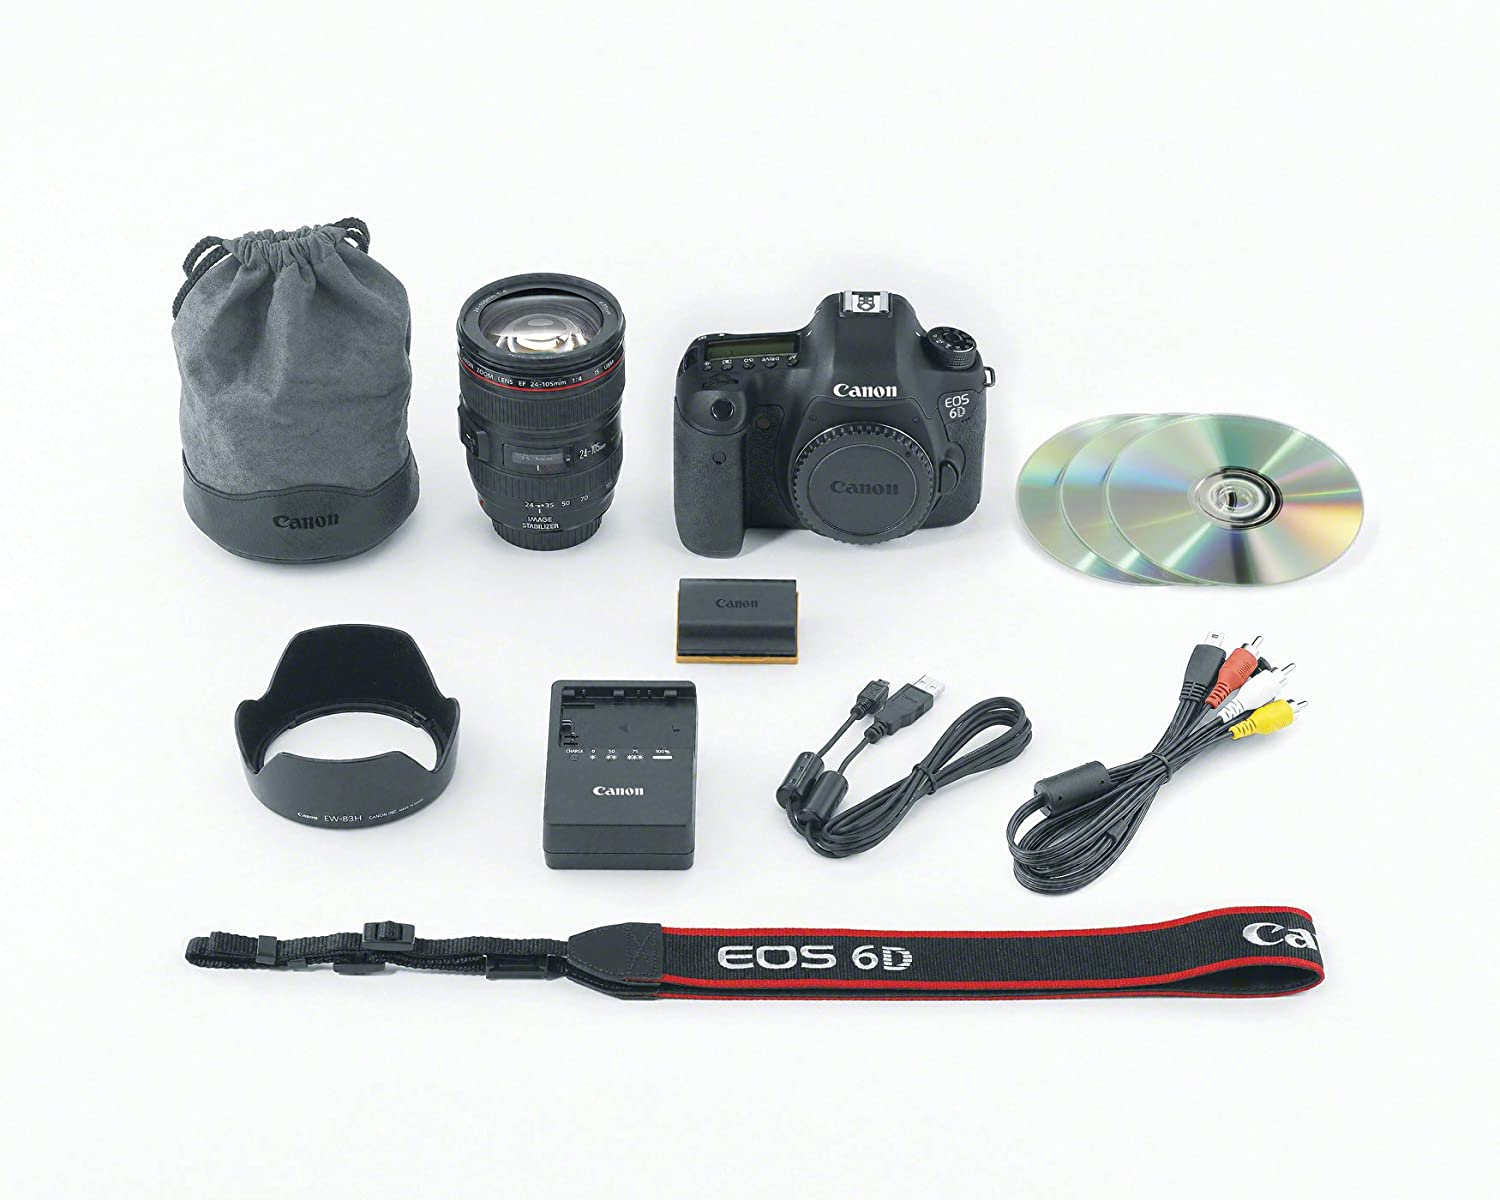 Canon EOS 6D 20.2 MP CMOS Digital SLR Camera with 3.0-Inch LCD and EF24-105mm IS Lens Kit $2,449.00